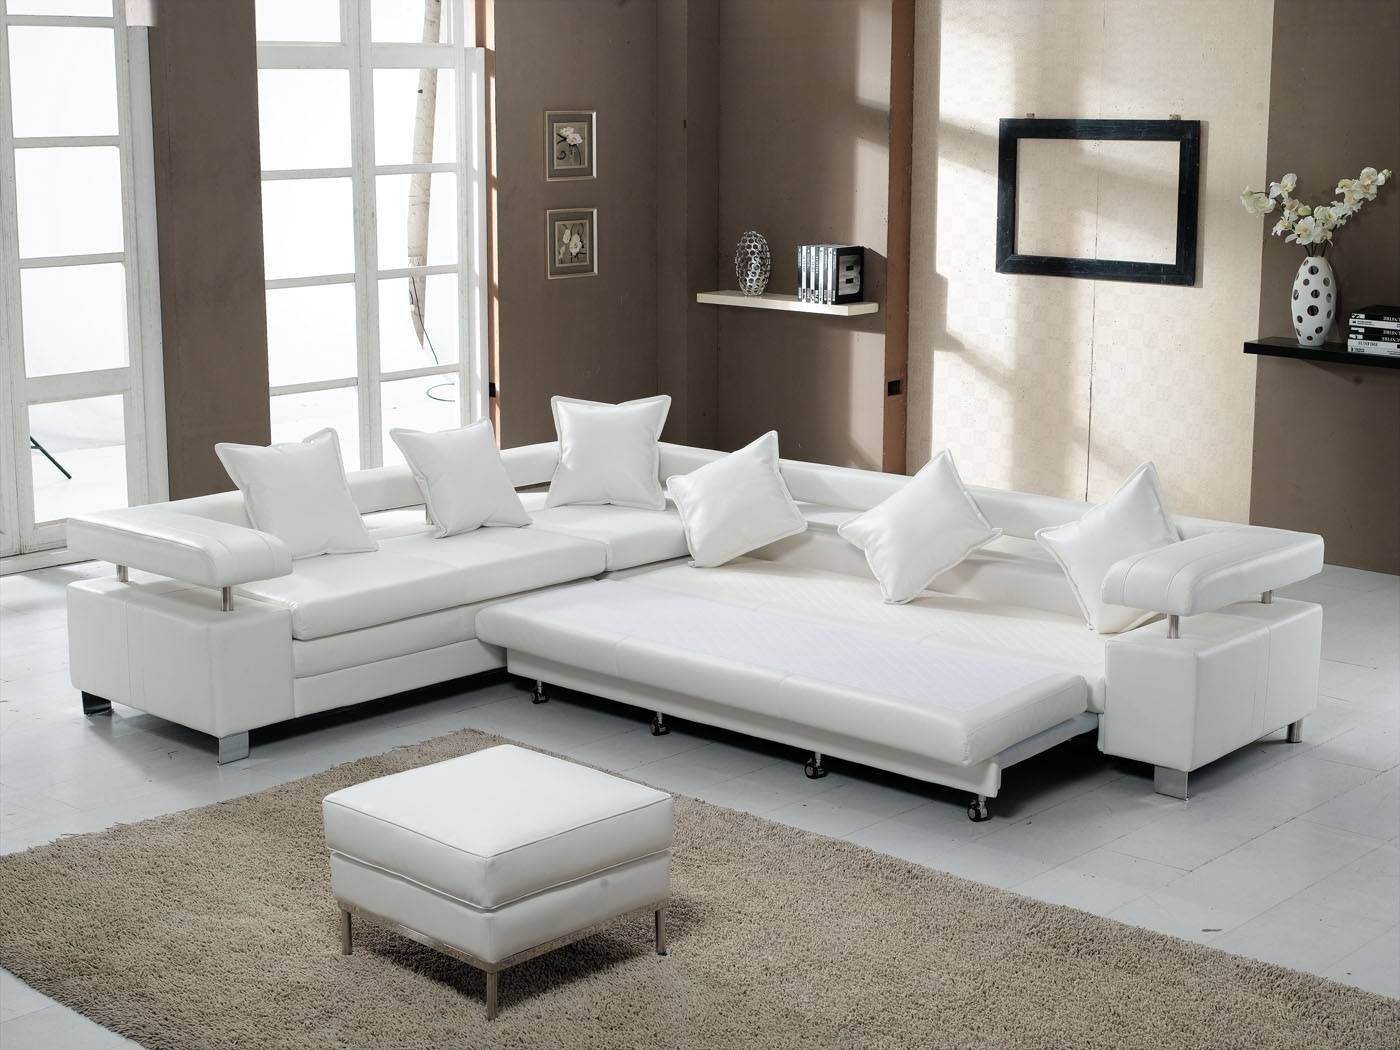 12 Best Of Cool Sleeper Sofas within Cool Sleeper Sofas (Image 5 of 30)